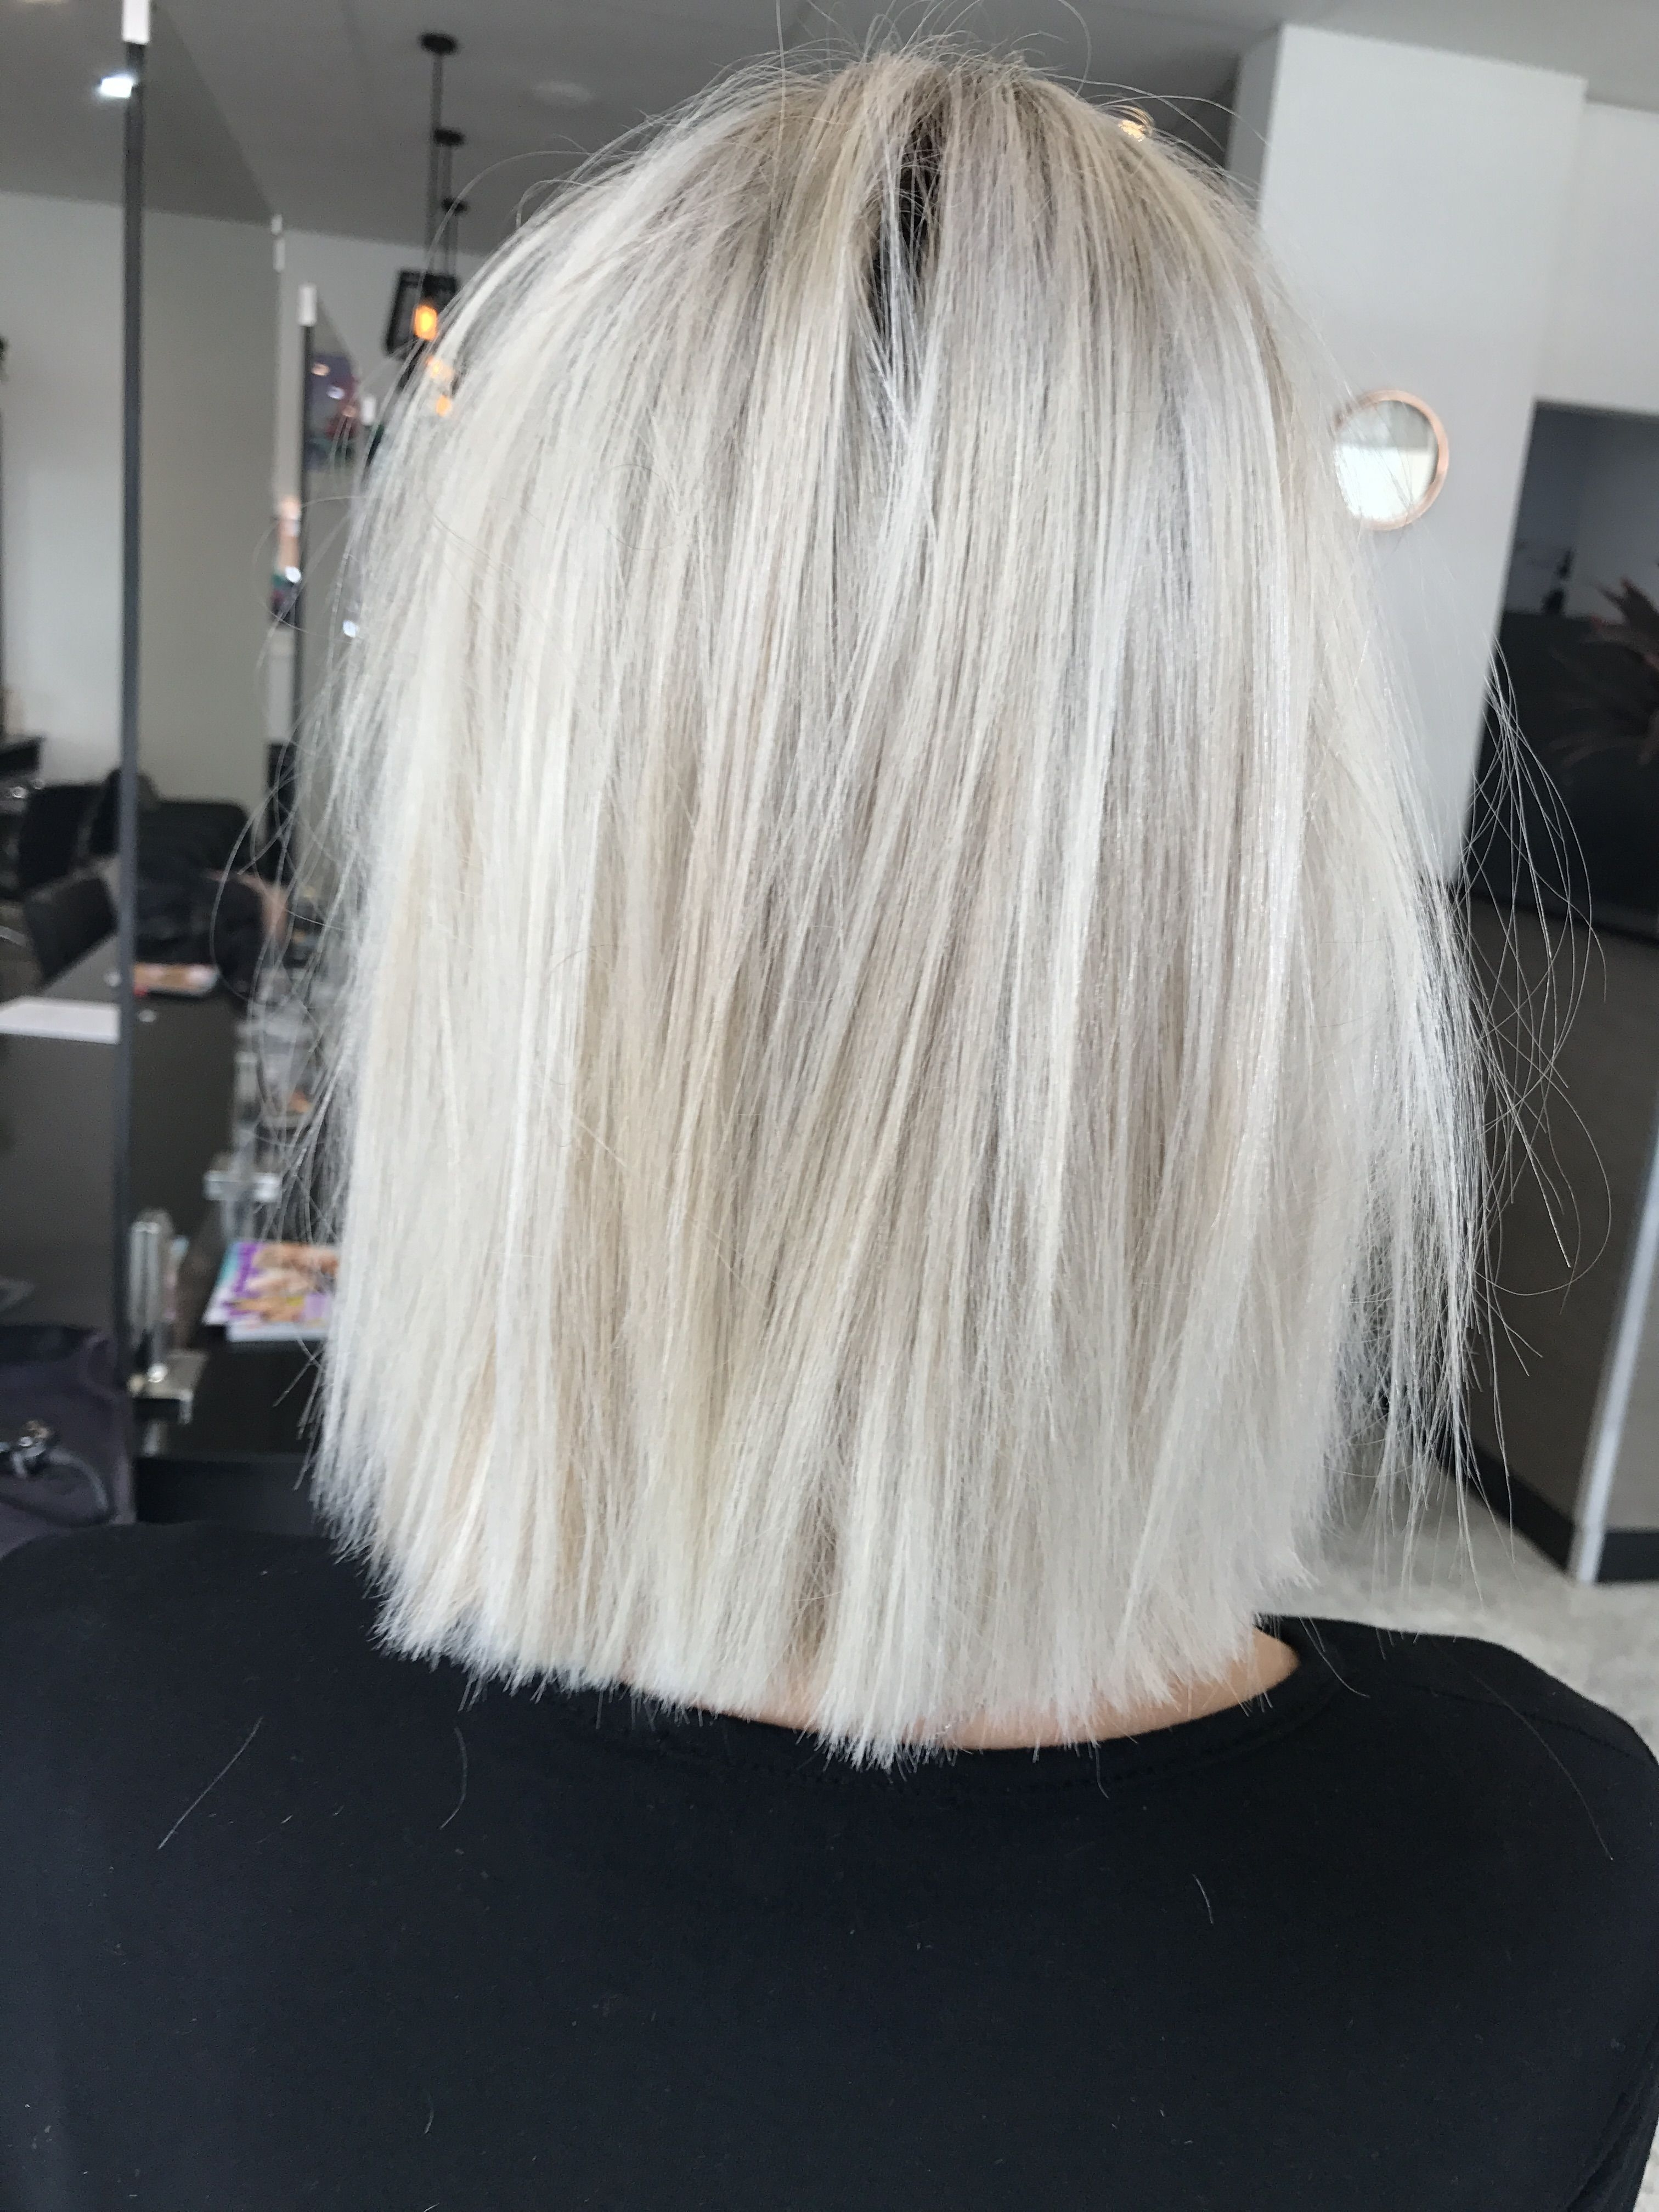 Well Liked Cream Colored Bob Blonde Hairstyles Pertaining To Blonde Hair Short Lob Textured Straight Hair Cut Colour Cool Ash (View 6 of 20)